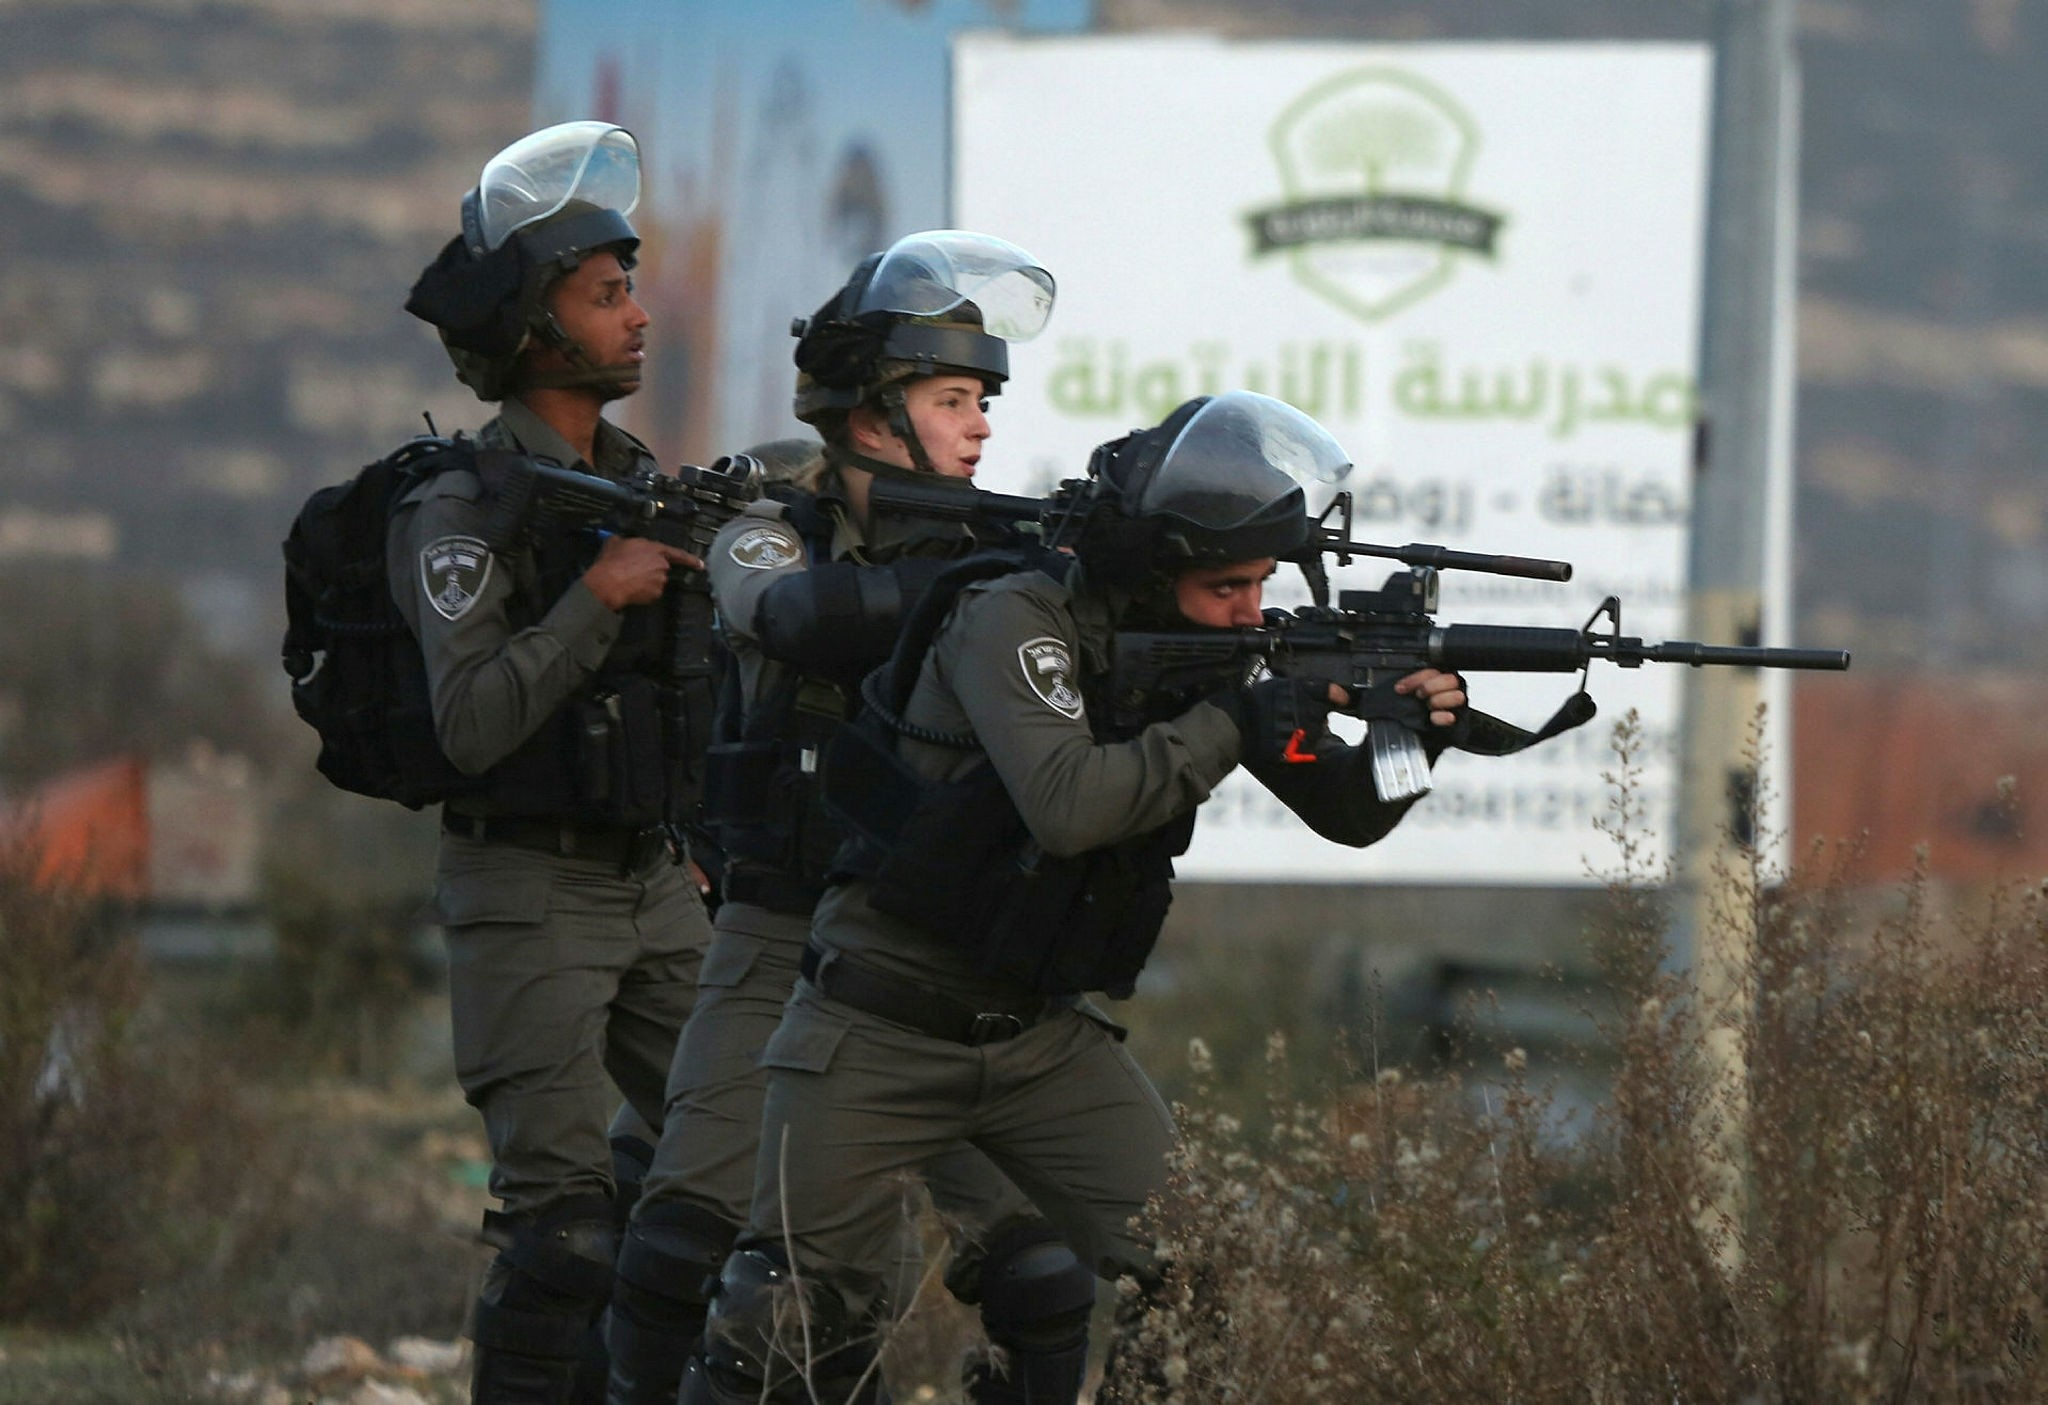 Israeli security forces during protests on December 10, 2017 in illegally occupied West Bank (AA Photo)